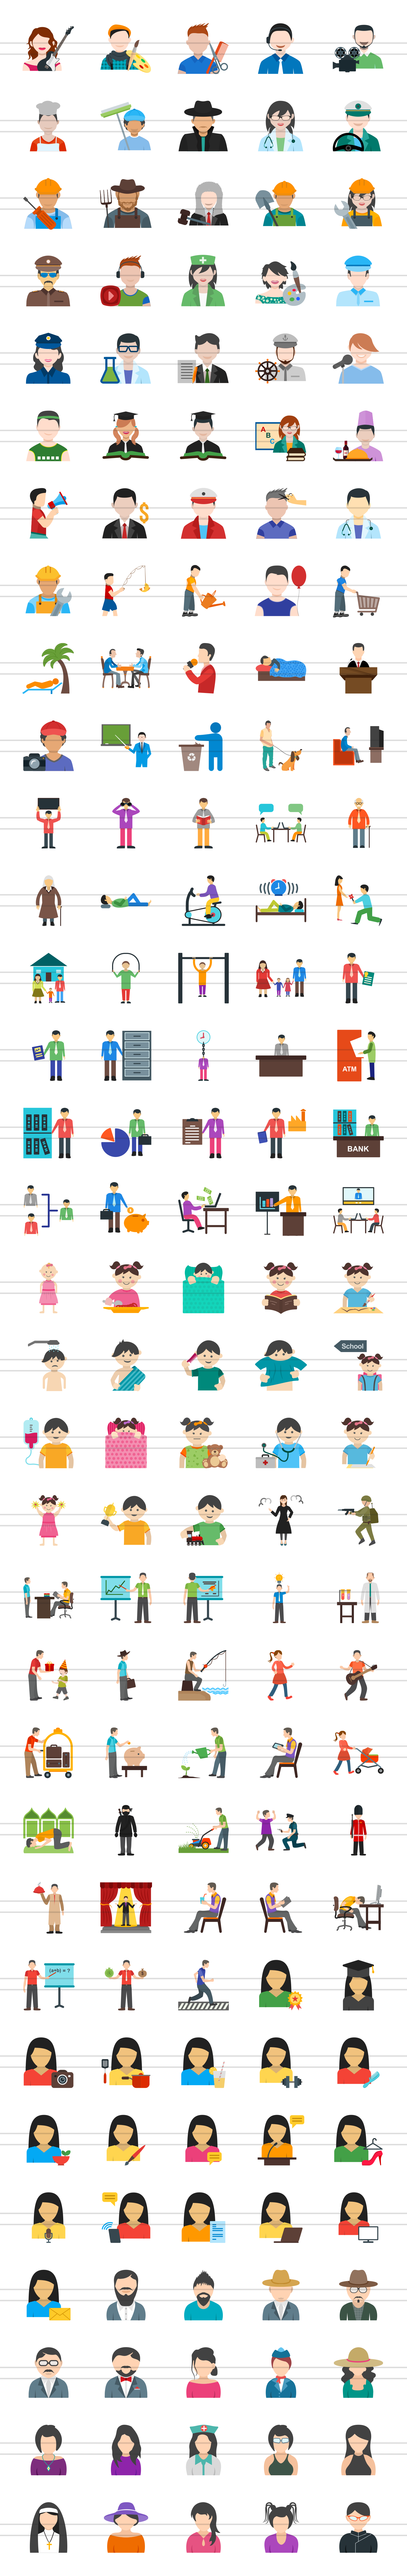 166 People Flat Icons example image 2